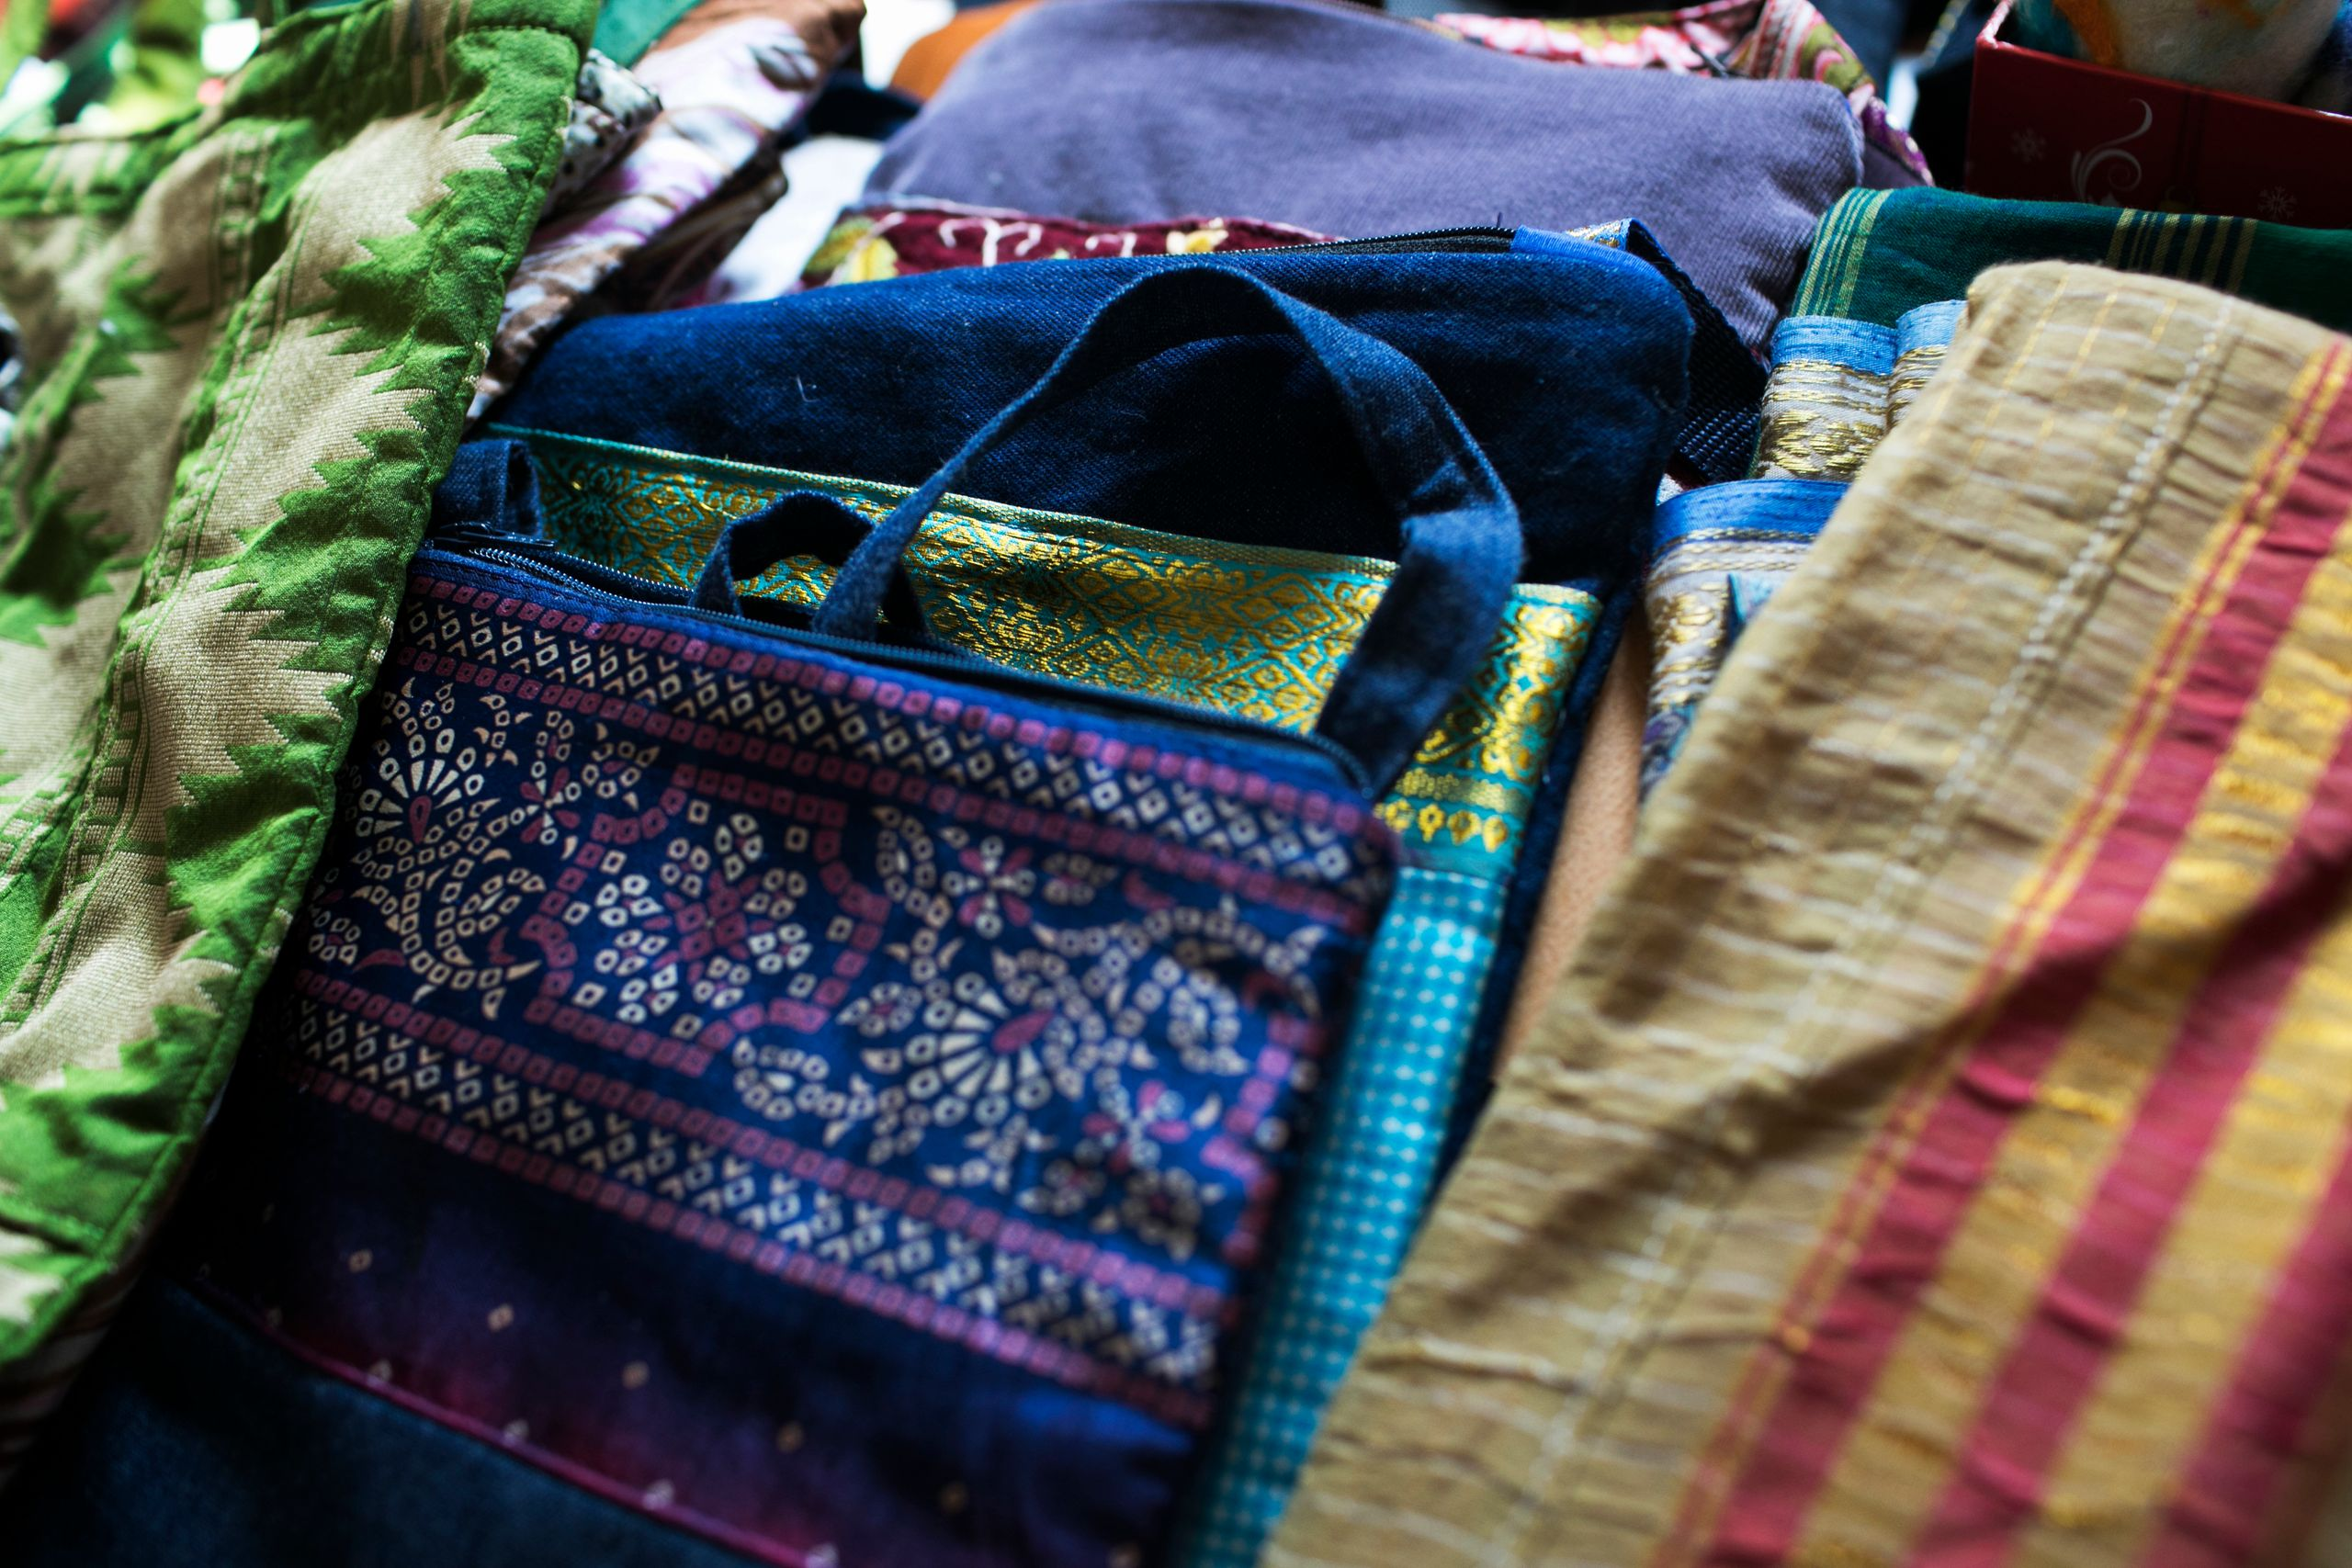 Colorful textiles are sold at The Exchange House in Akron, Ohio.